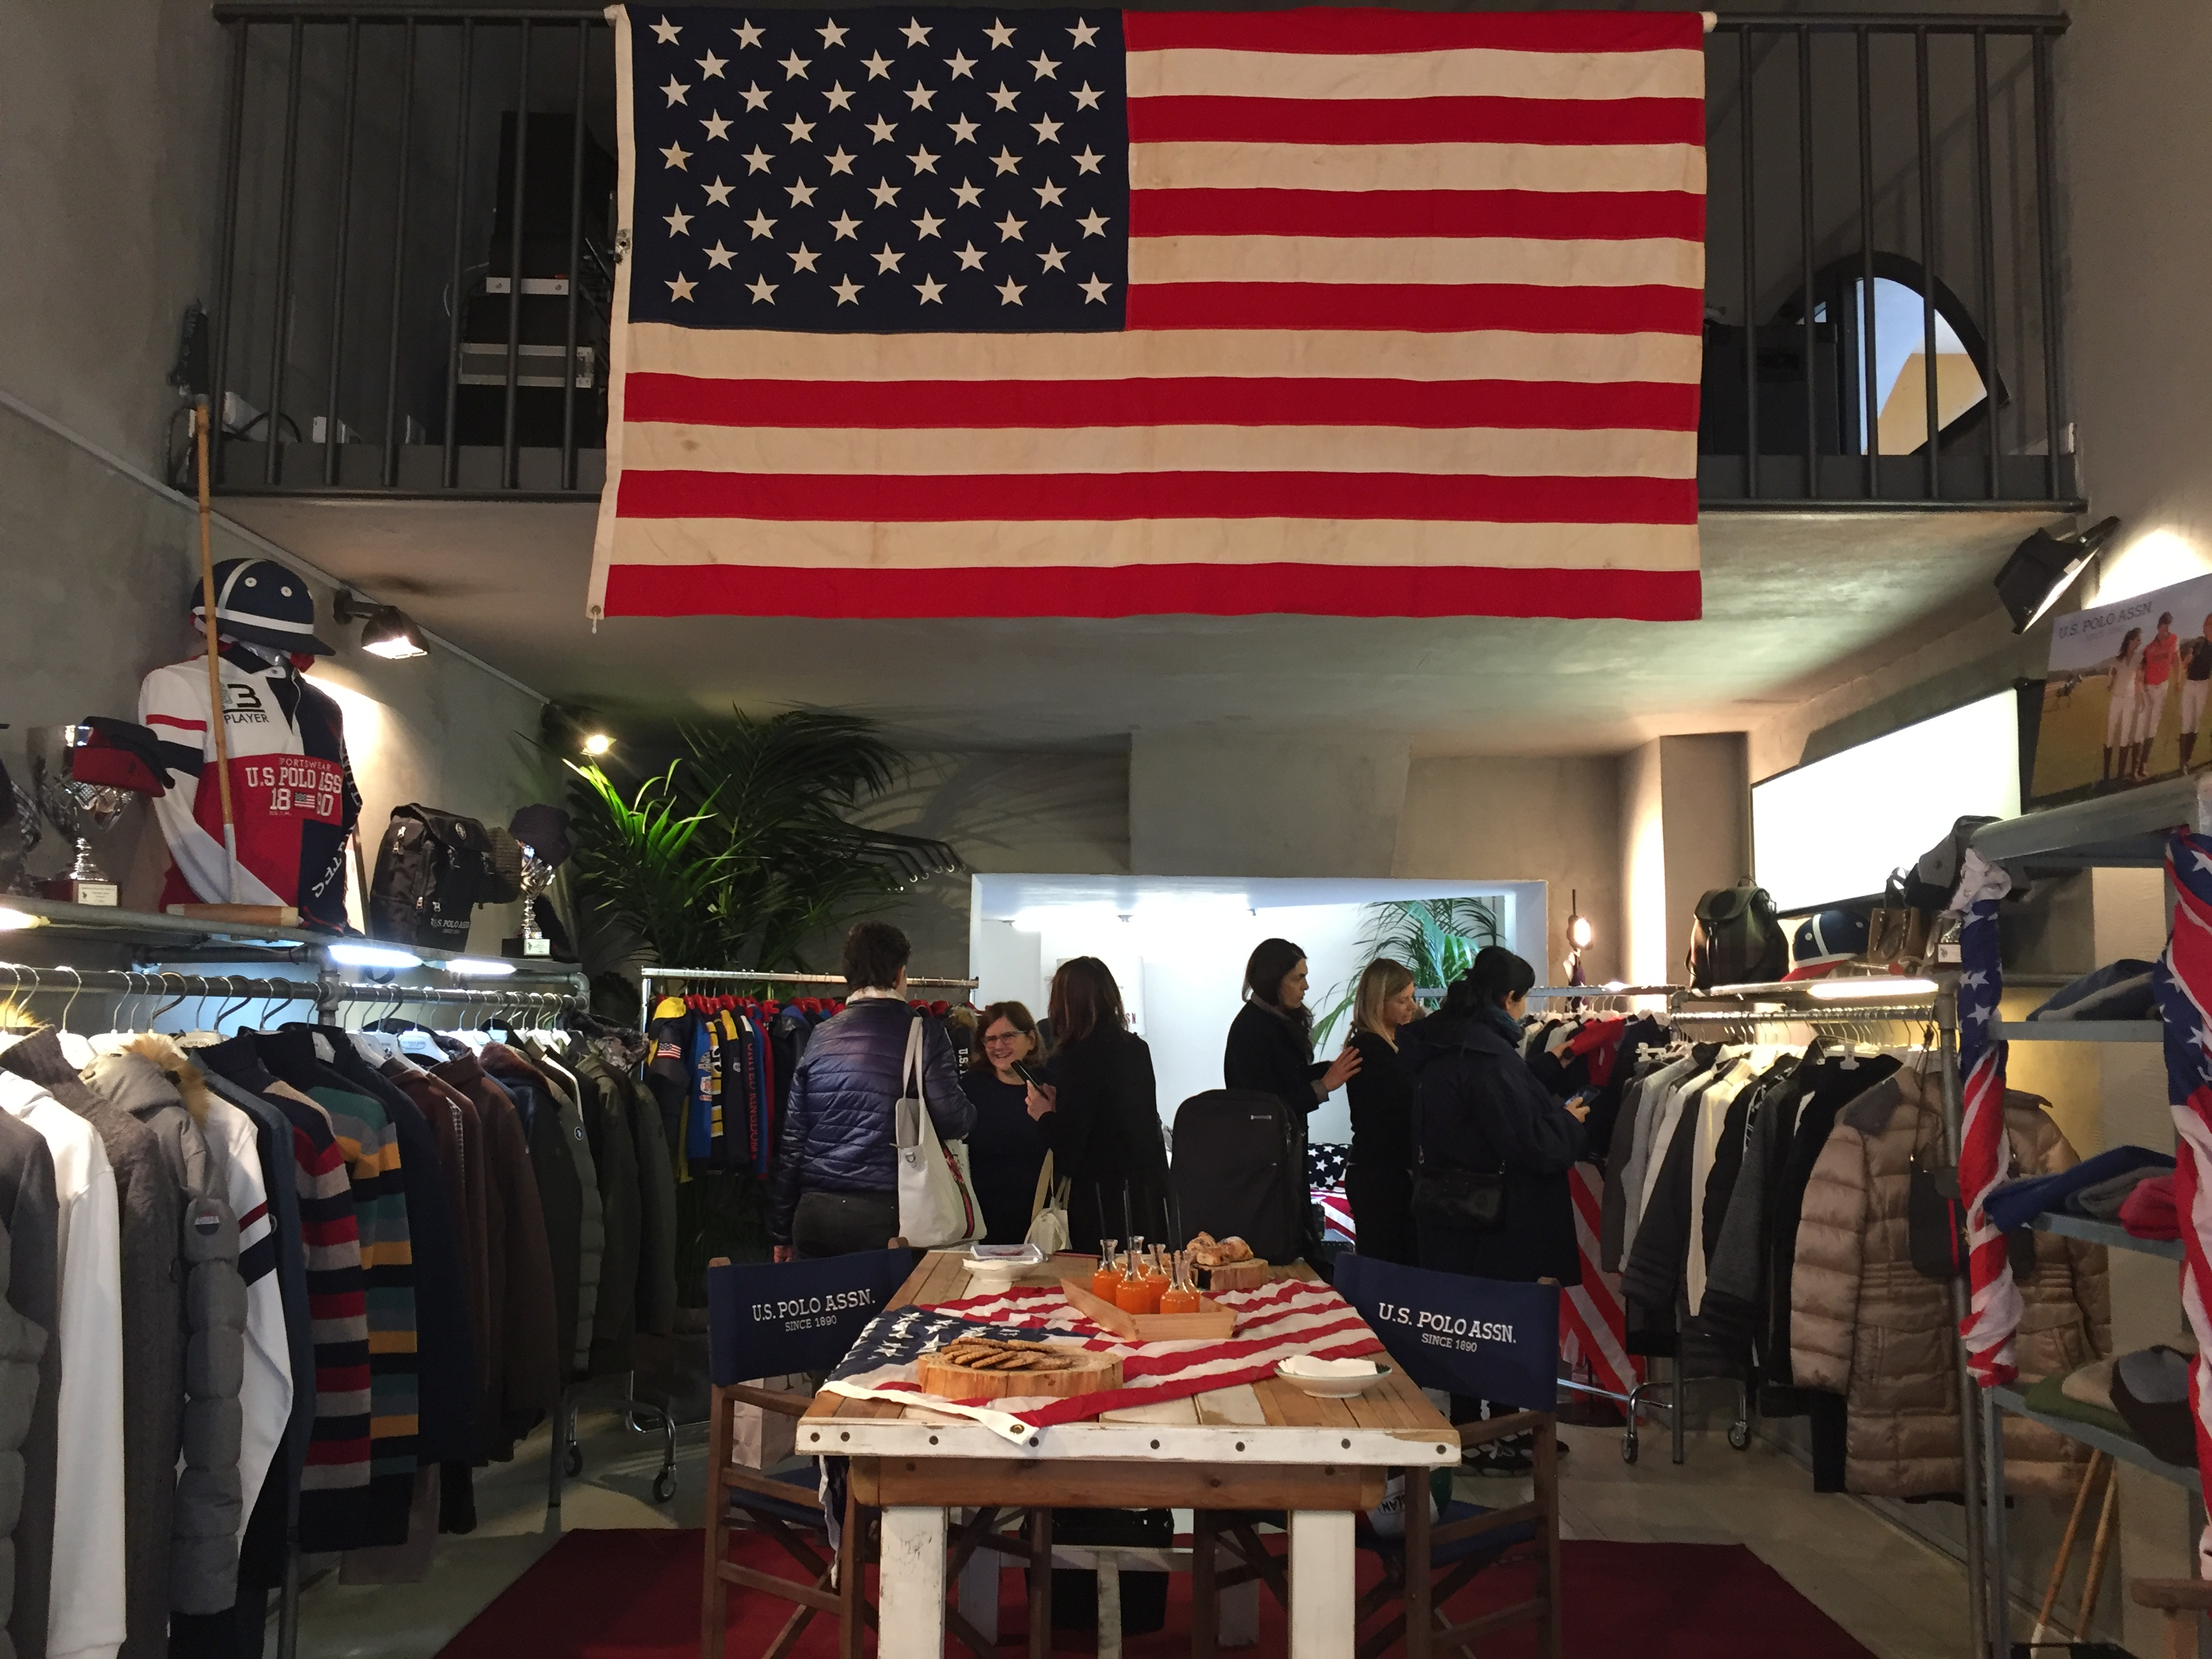 U.S. POLO ASSN. - press day  in Via Tortona 5 - 5